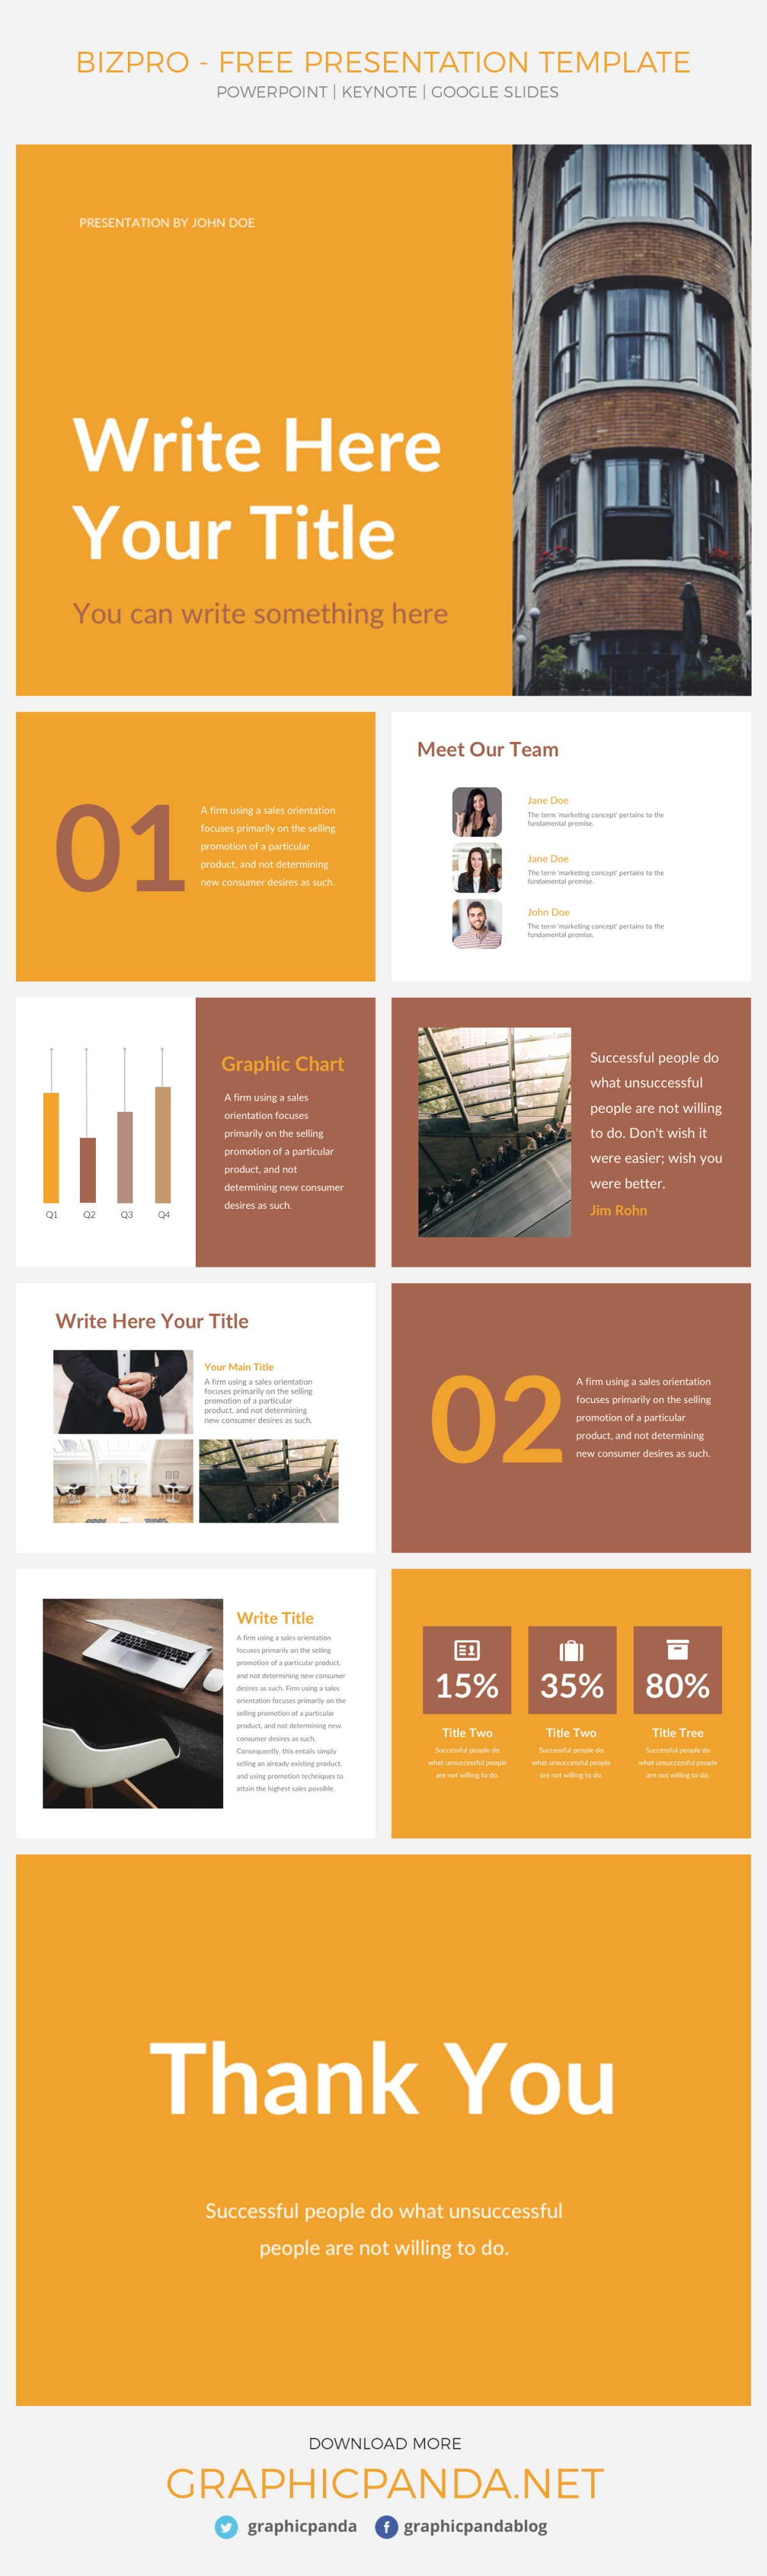 Are you looking for a new way to present all your sales or marketing data, but do not want to bore your viewers with a basic plain presentation? Well, Fortunately for you, you have come to the right place. Templates not only save you time, but they also bring your presentation to life and make your presentation attention grabbing.